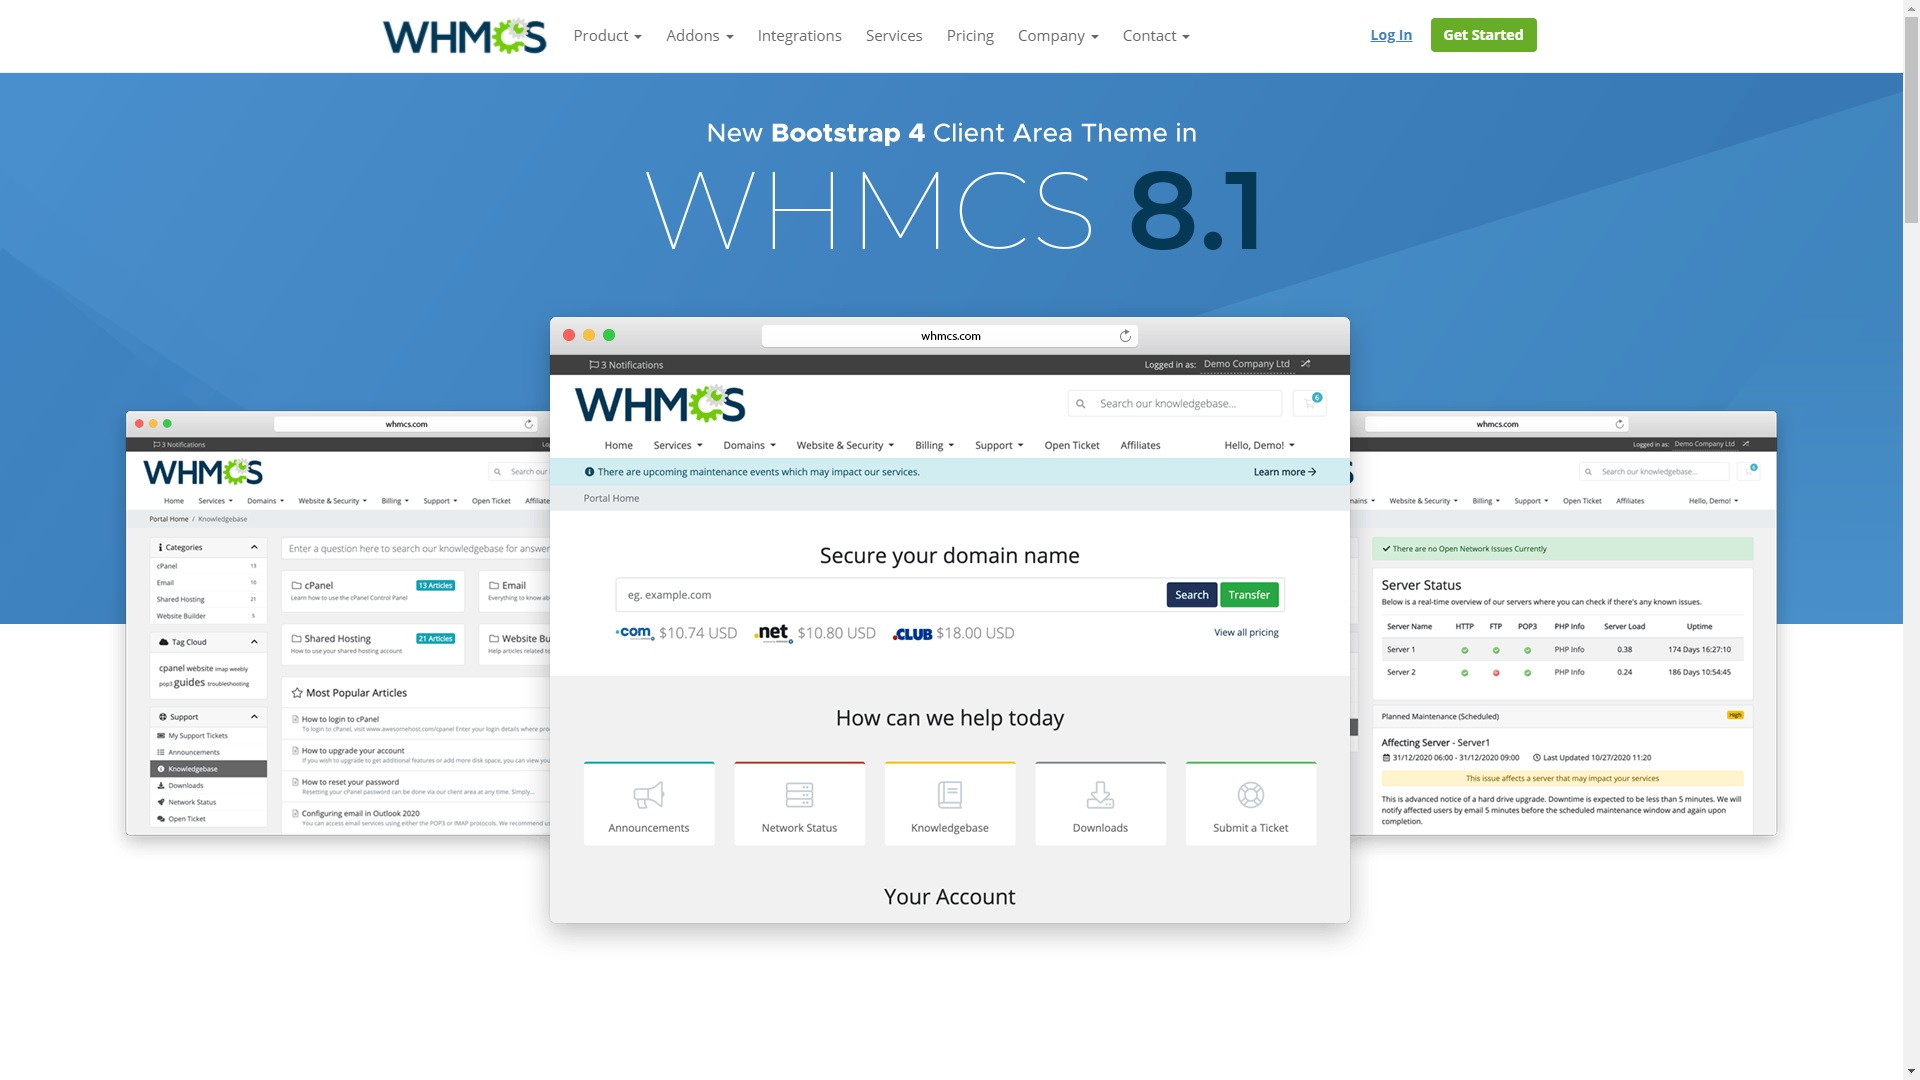 What's new in WHMCS 8.1